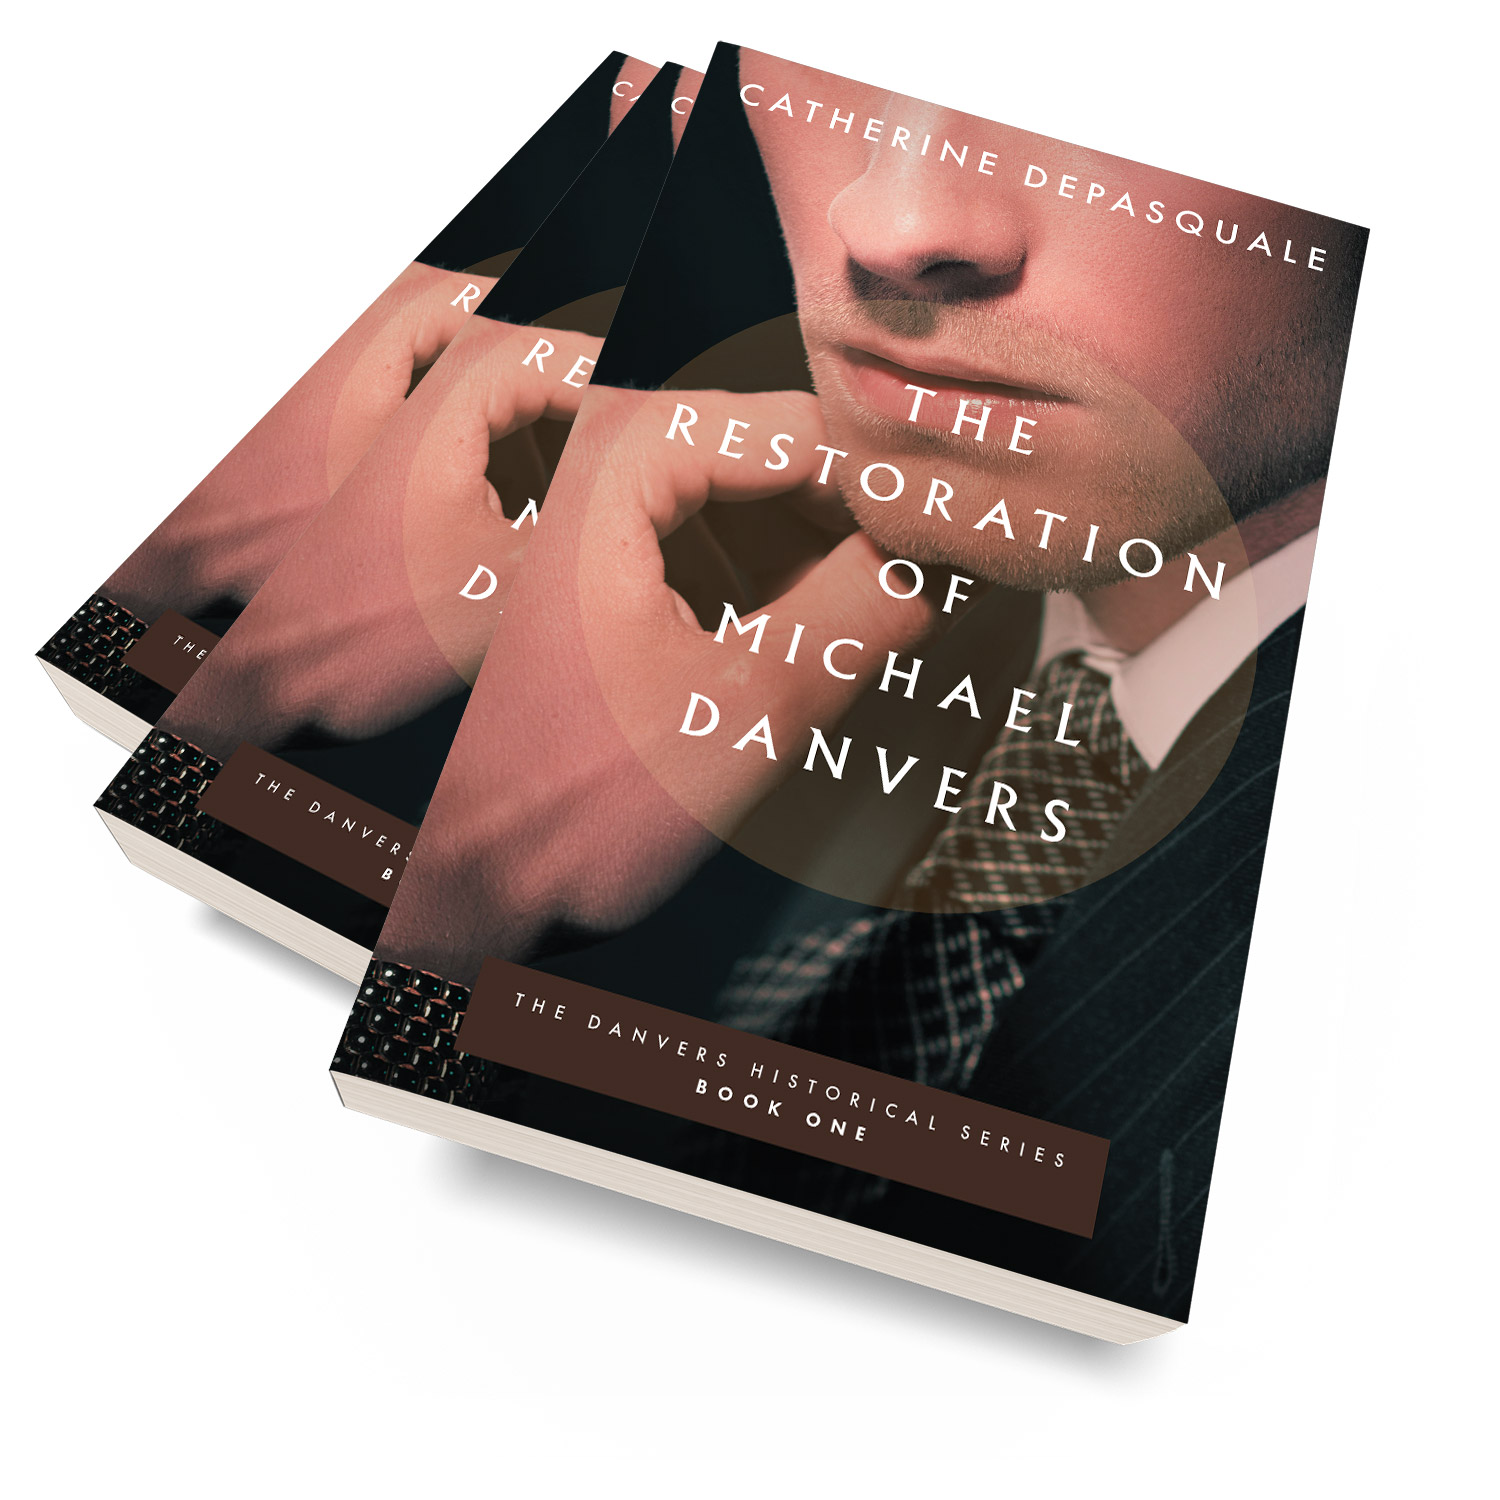 'The Restoration of Michael Danvers' is a faith-focussed character study, set in the late 1940s. The author is Catherine DePasquale. The book cover design and interior formatting are by Mark Thomas. To learn more about what Mark could do for your book, please visit coverness.com.